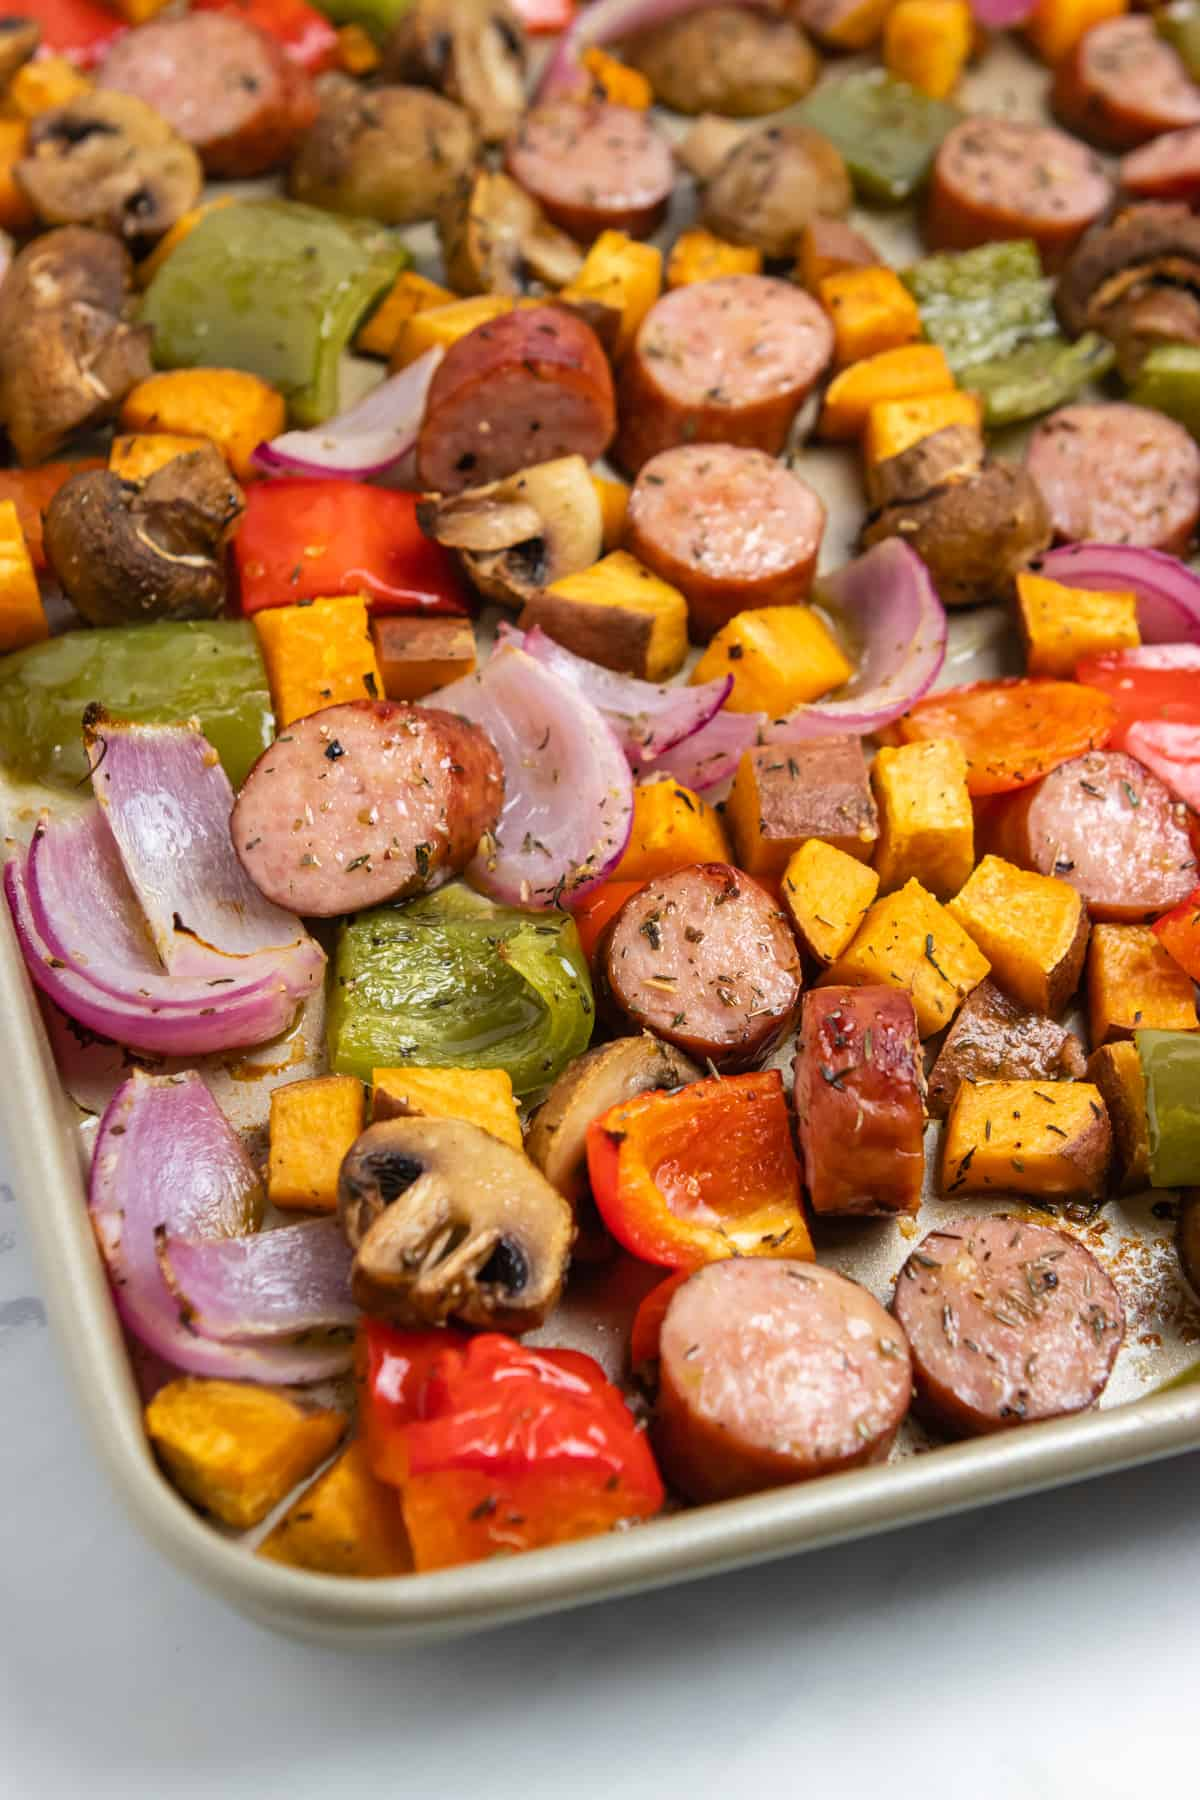 Sheet Pan with cooked sausages and vegetables.